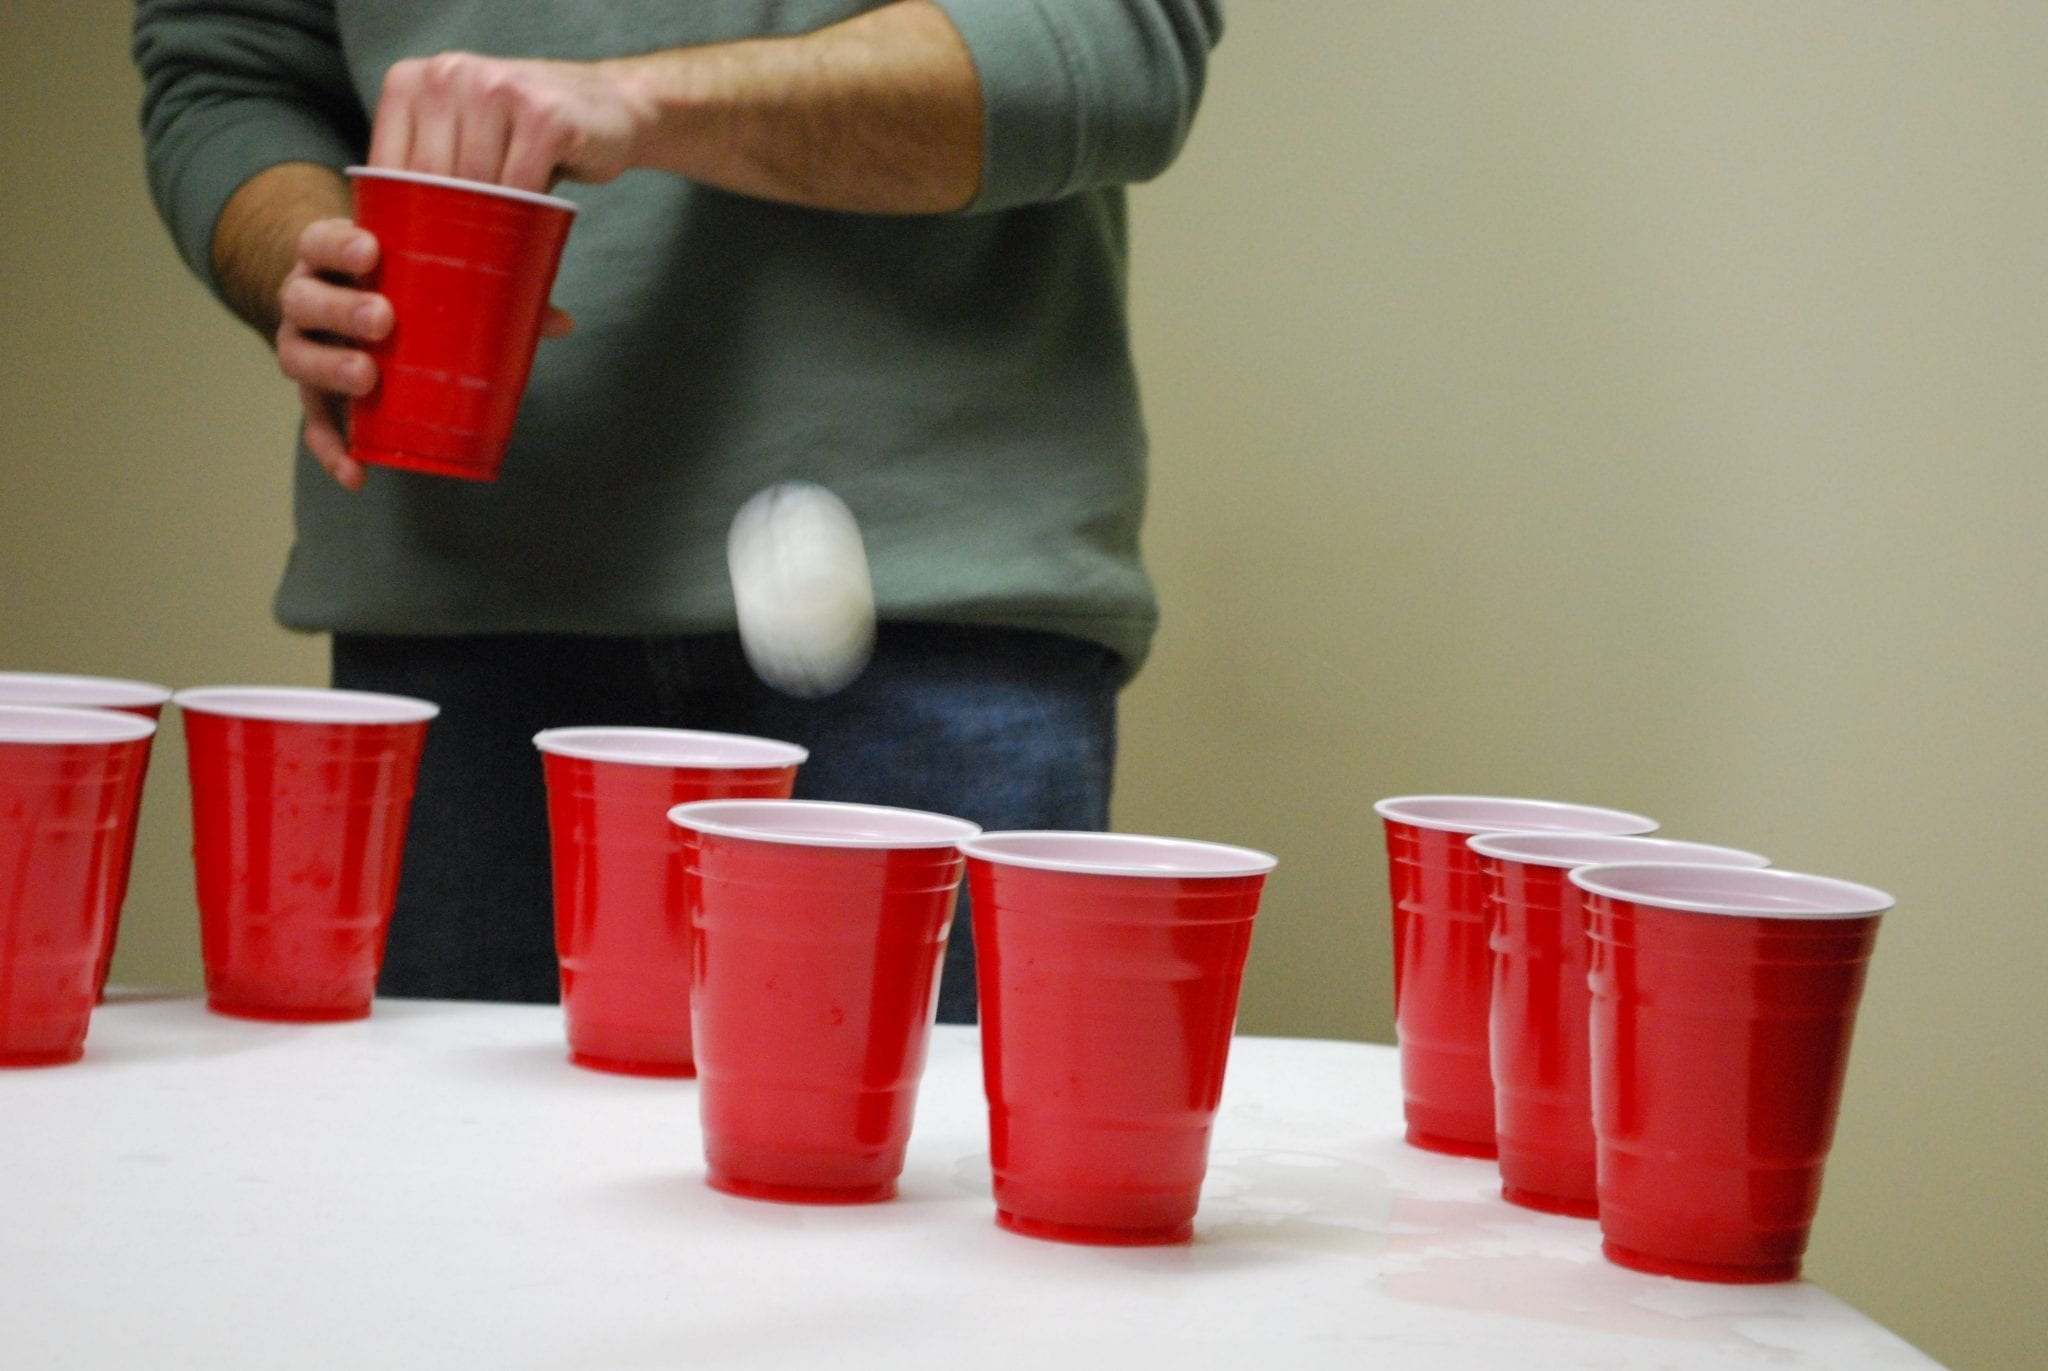 Beer pong, a drinking game commonly played at frat parties; image by Laura LaRose, via Flickr, CC BY 2.0, no changes.